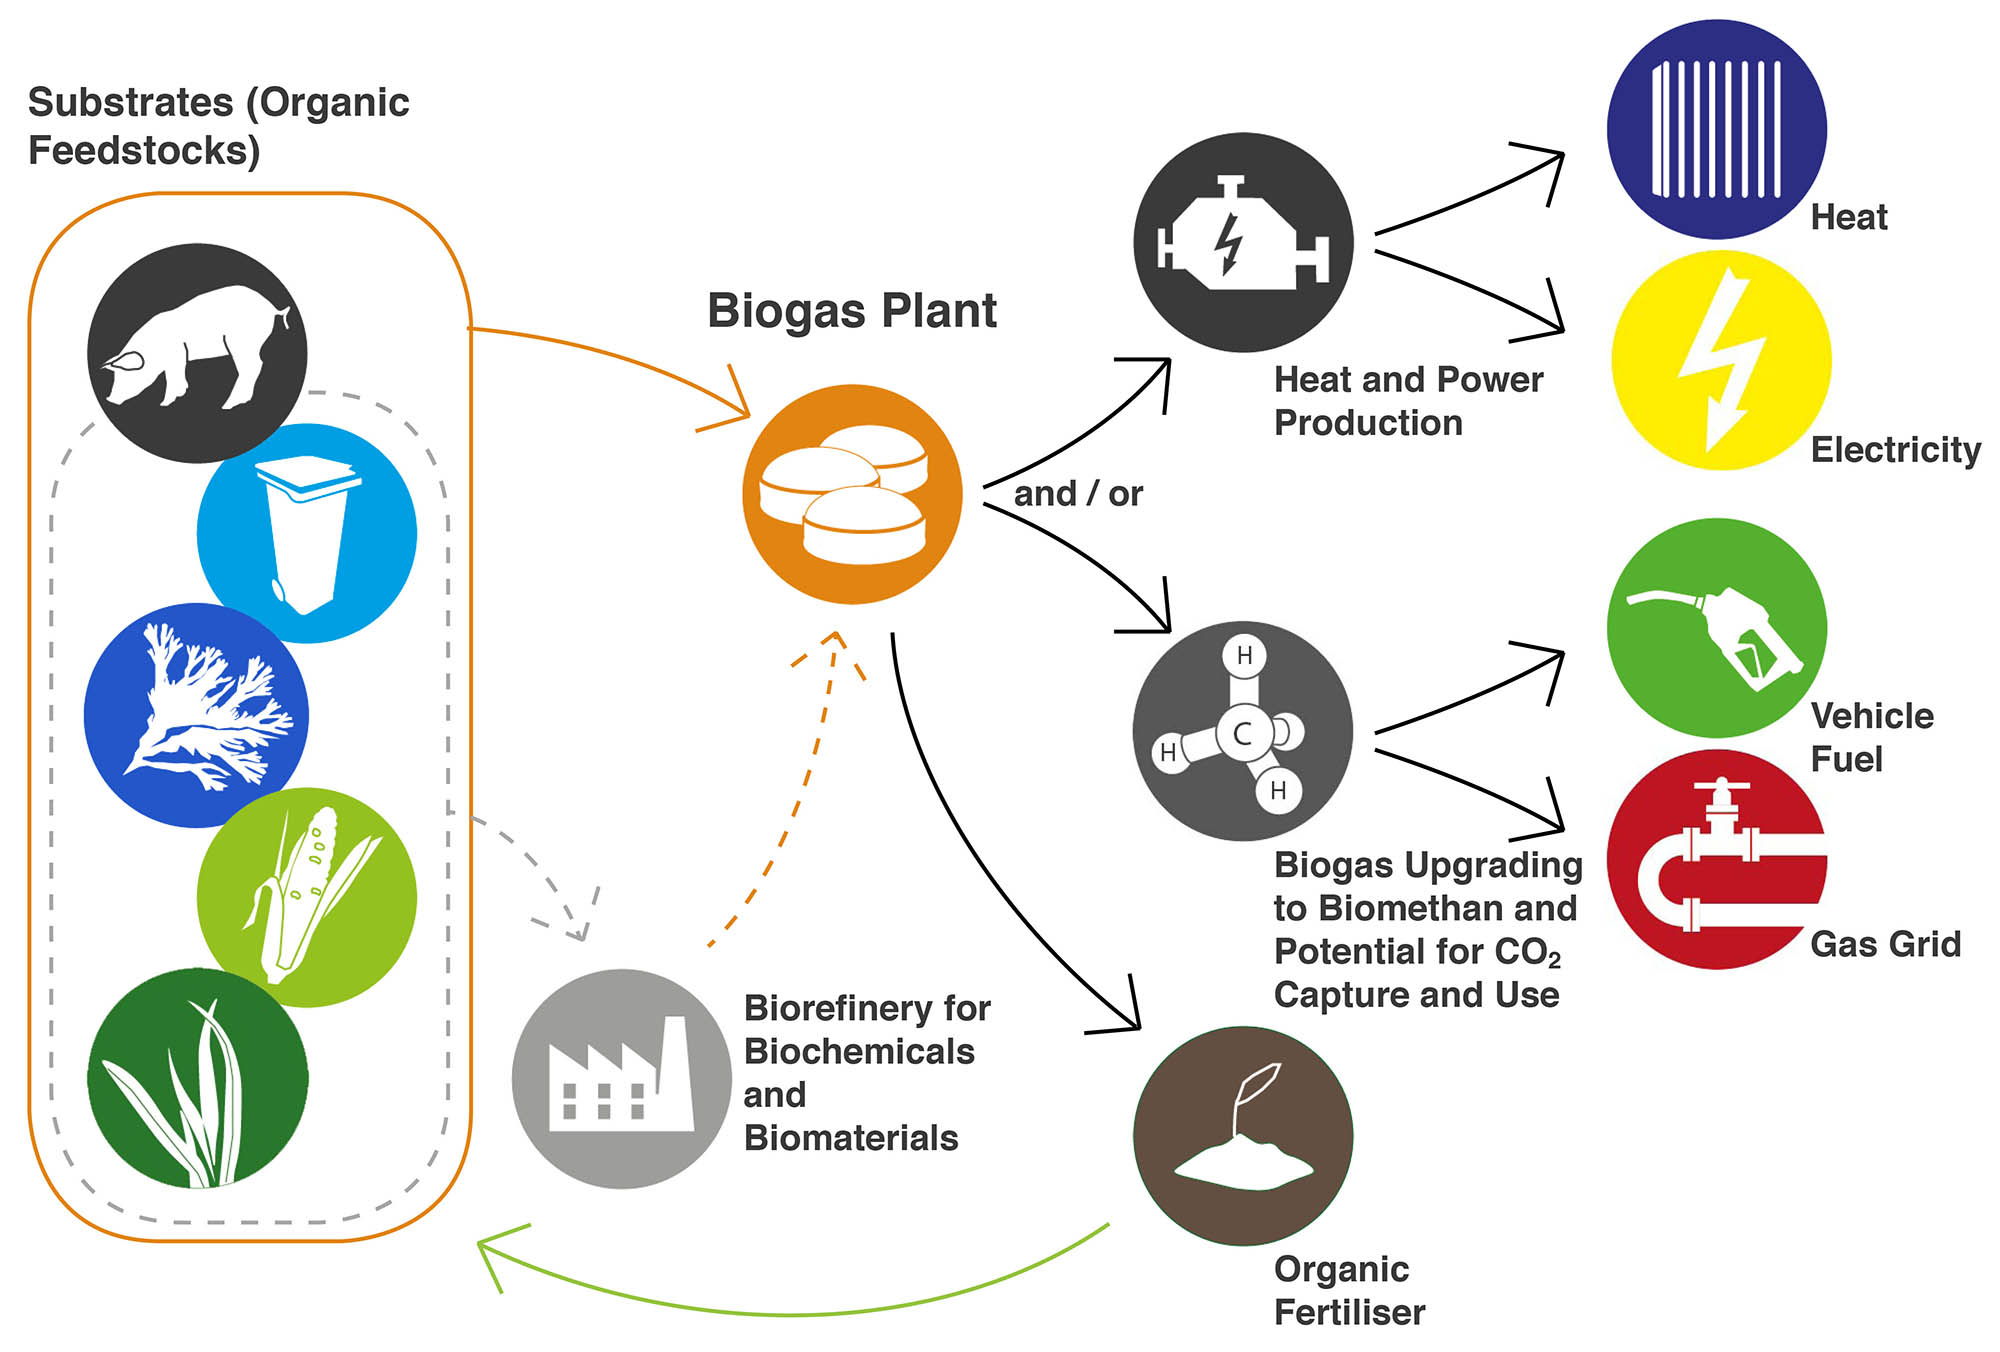 The image shows the value chain for biogas as described in the text.